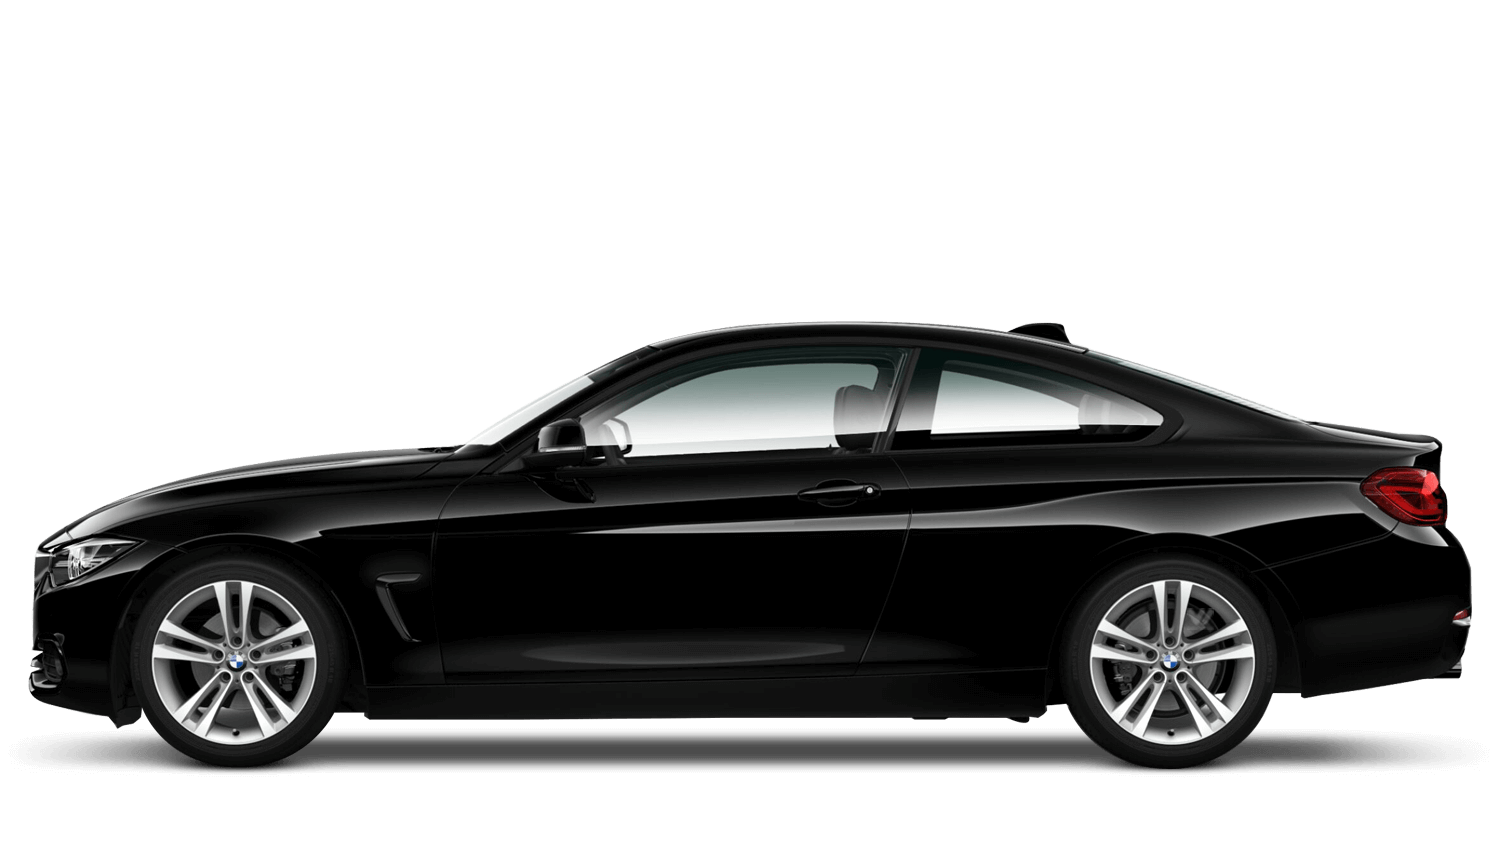 Jet Black (Solid) BMW 4 Series Coupe